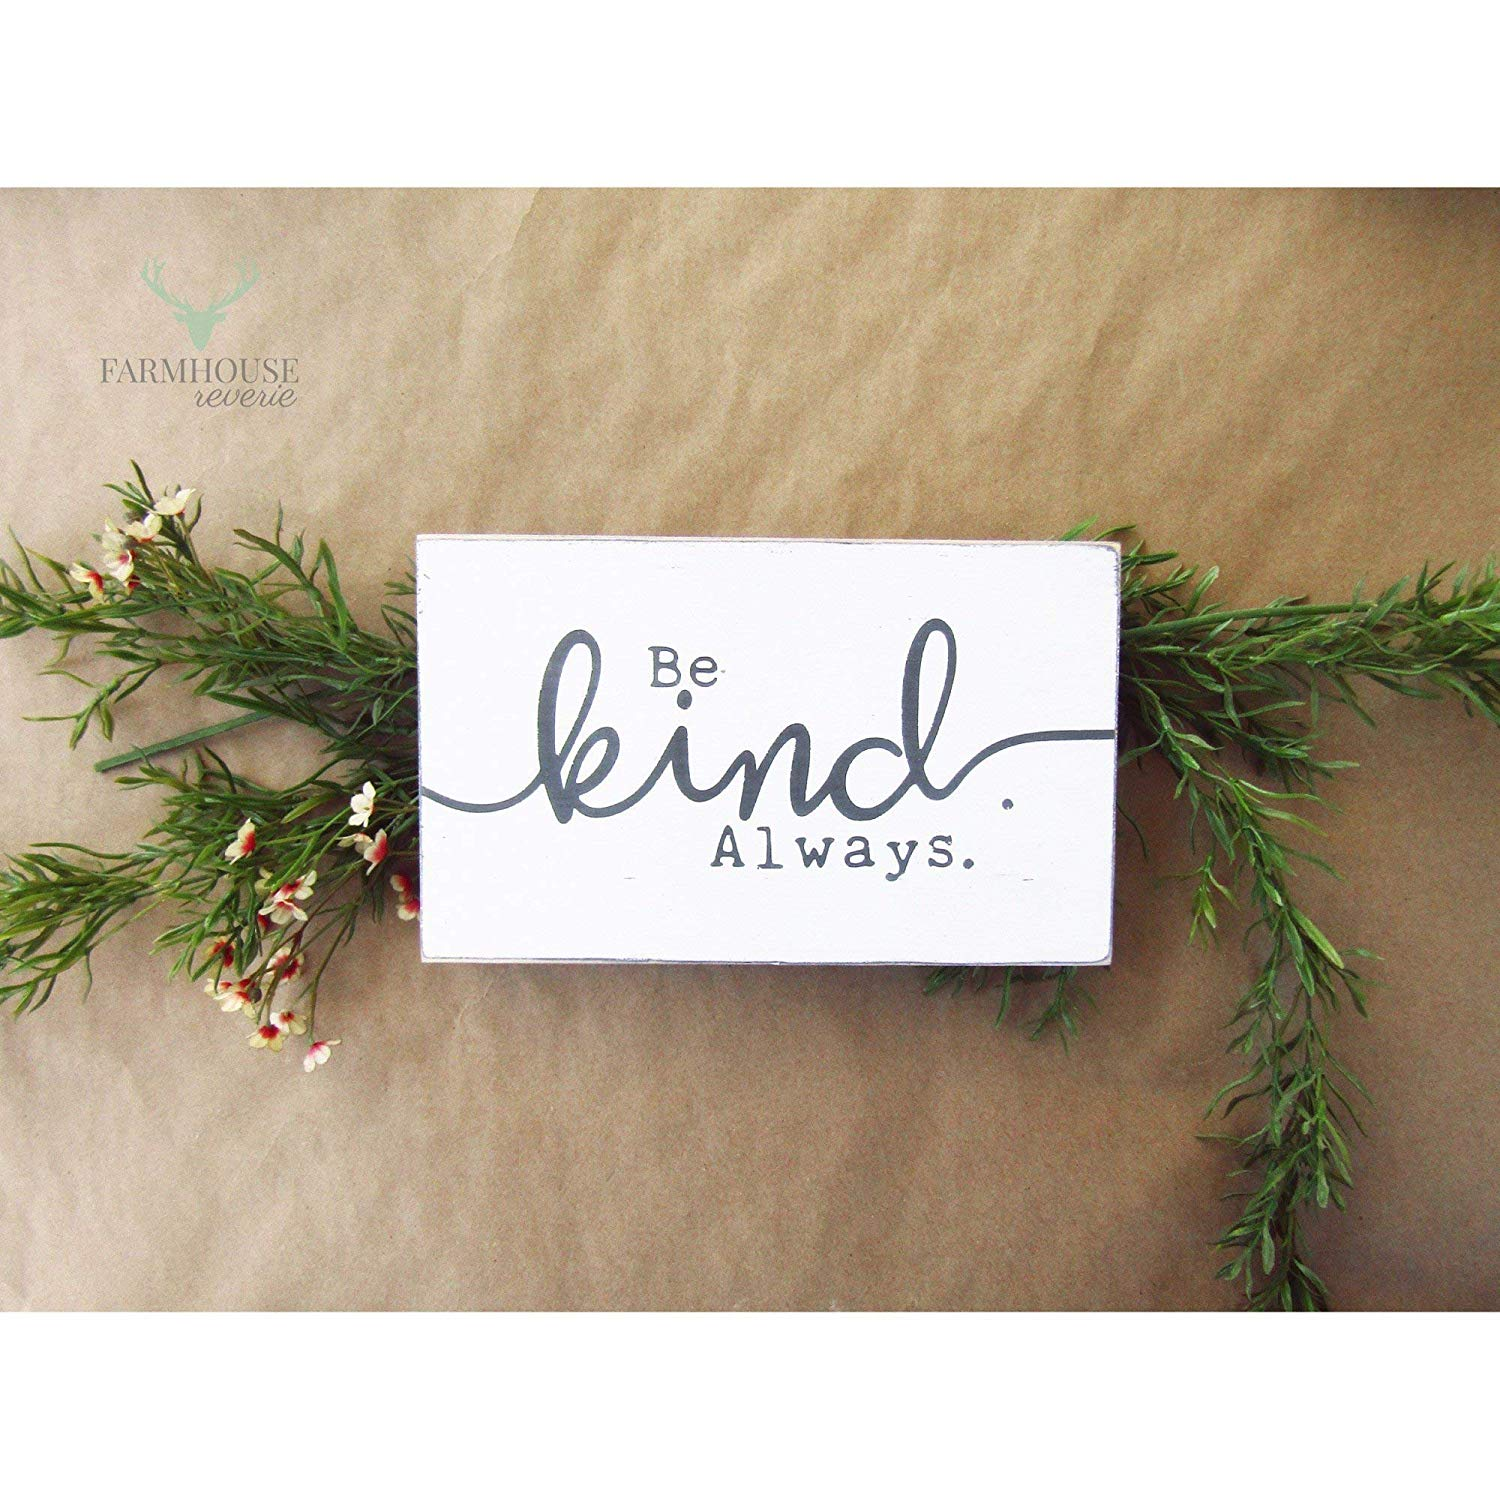 Rustic Be Kind Sign (Small Rustic Wood Sign, Farmhouse Sign, Shabby Chic Sign, French Country Signs, Farmhouse Home Decor, Rustic Home Decor, Primitive Signs, Primitive Decor, Shabby Chic Decor)